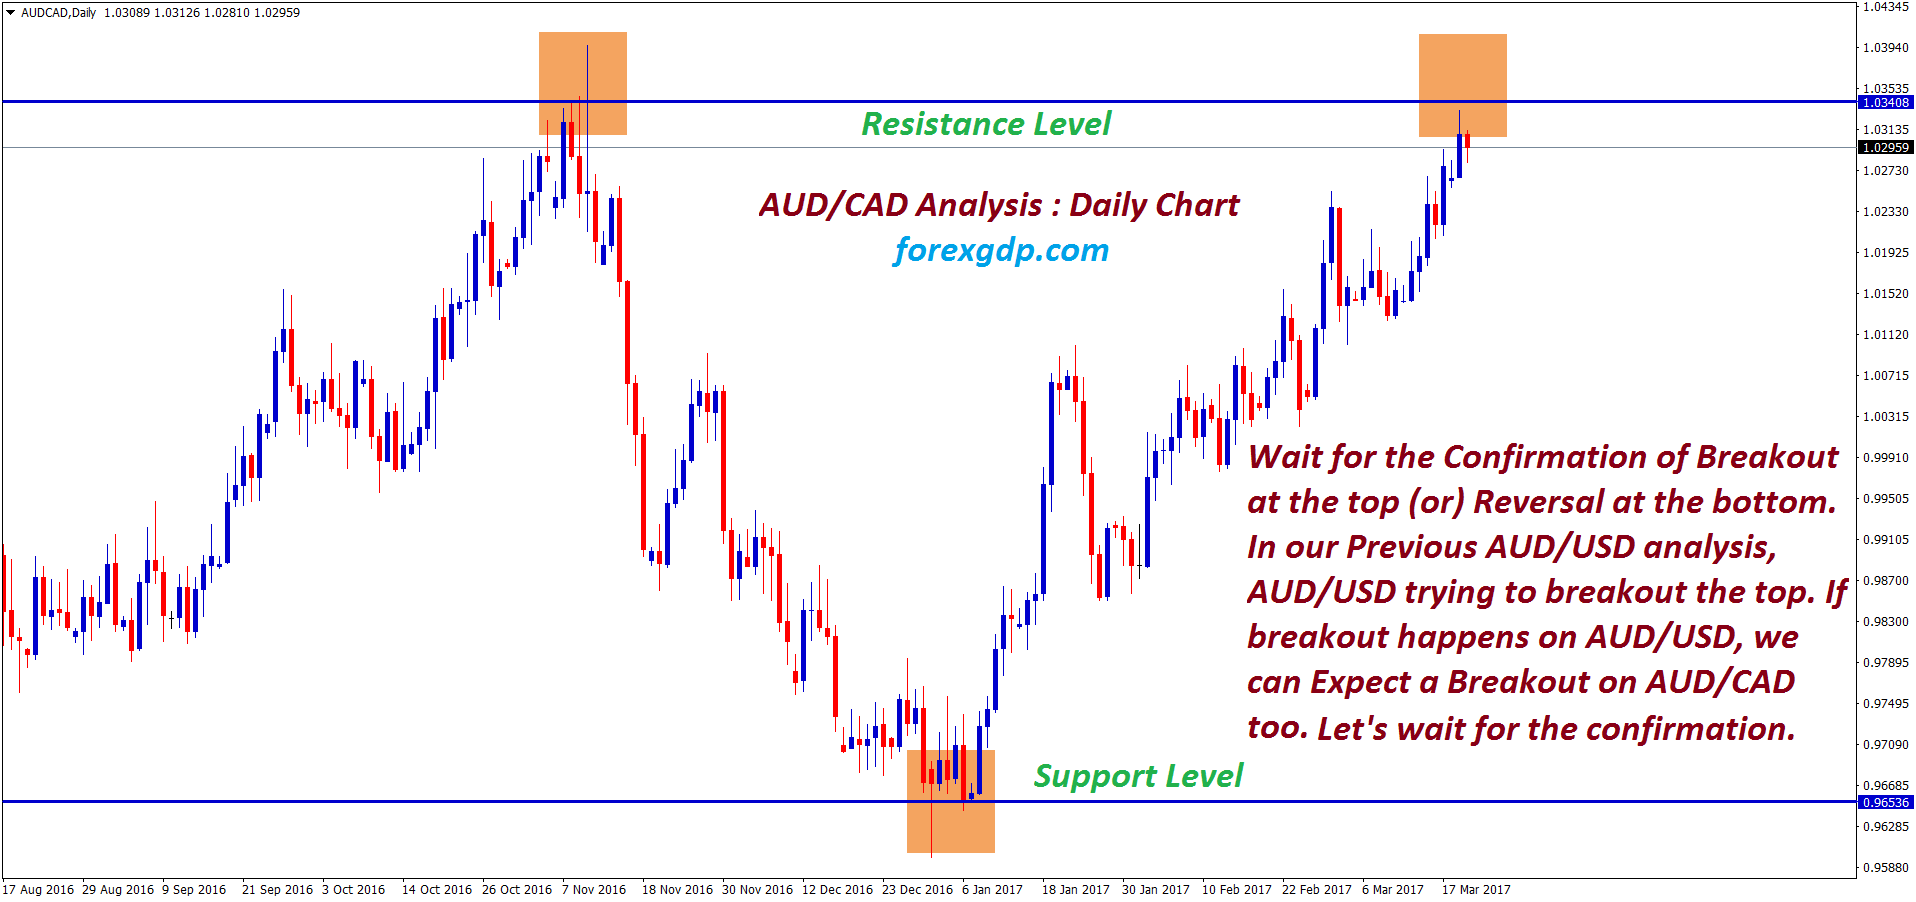 Aud cad forex forecast free anthony rosenthal vjs investments that pay